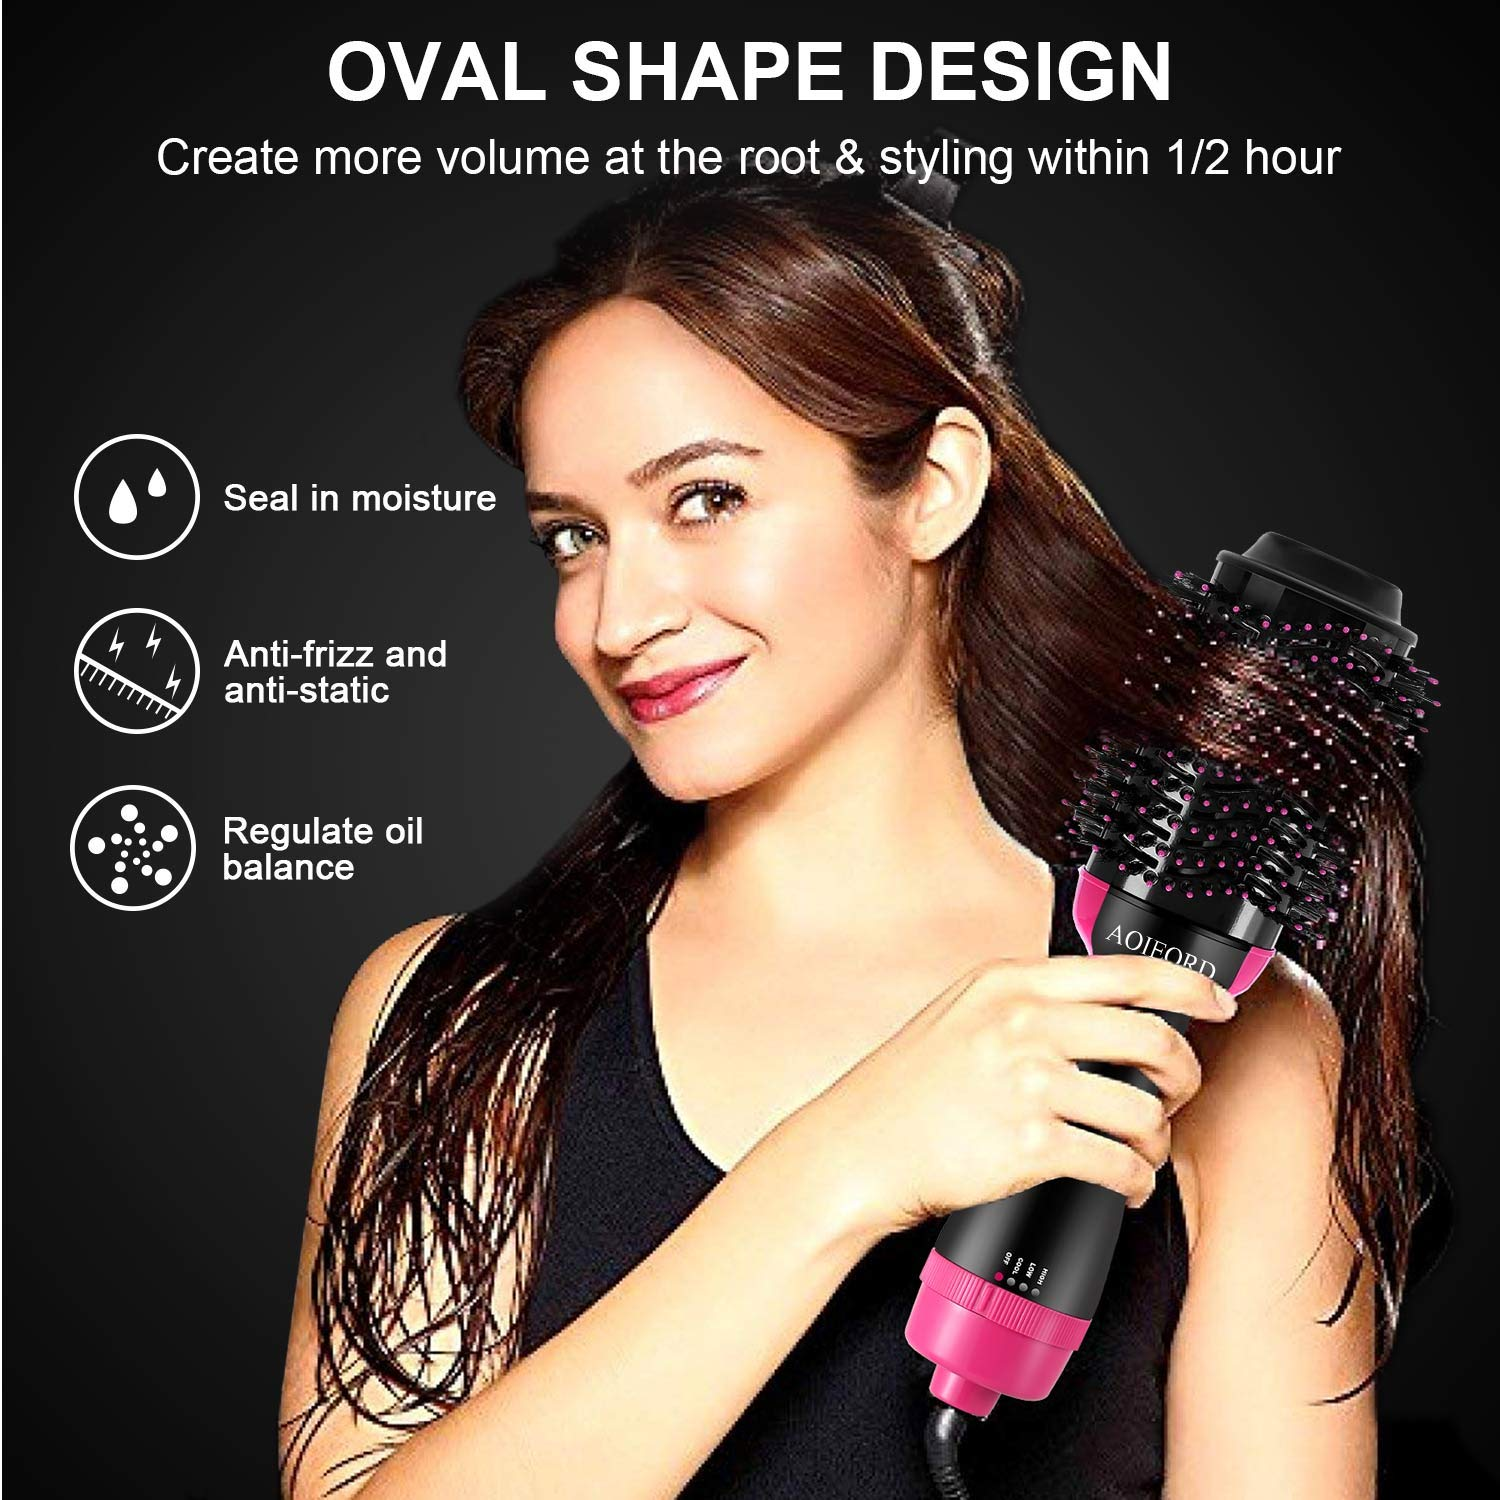 Hair Dryer Brush, AOIEORD Dry & Straighten & Curl in One Step Hair Dryer and Volumizer, Smooth Frizz with Ionic Technology by AOIEORD (Image #4)